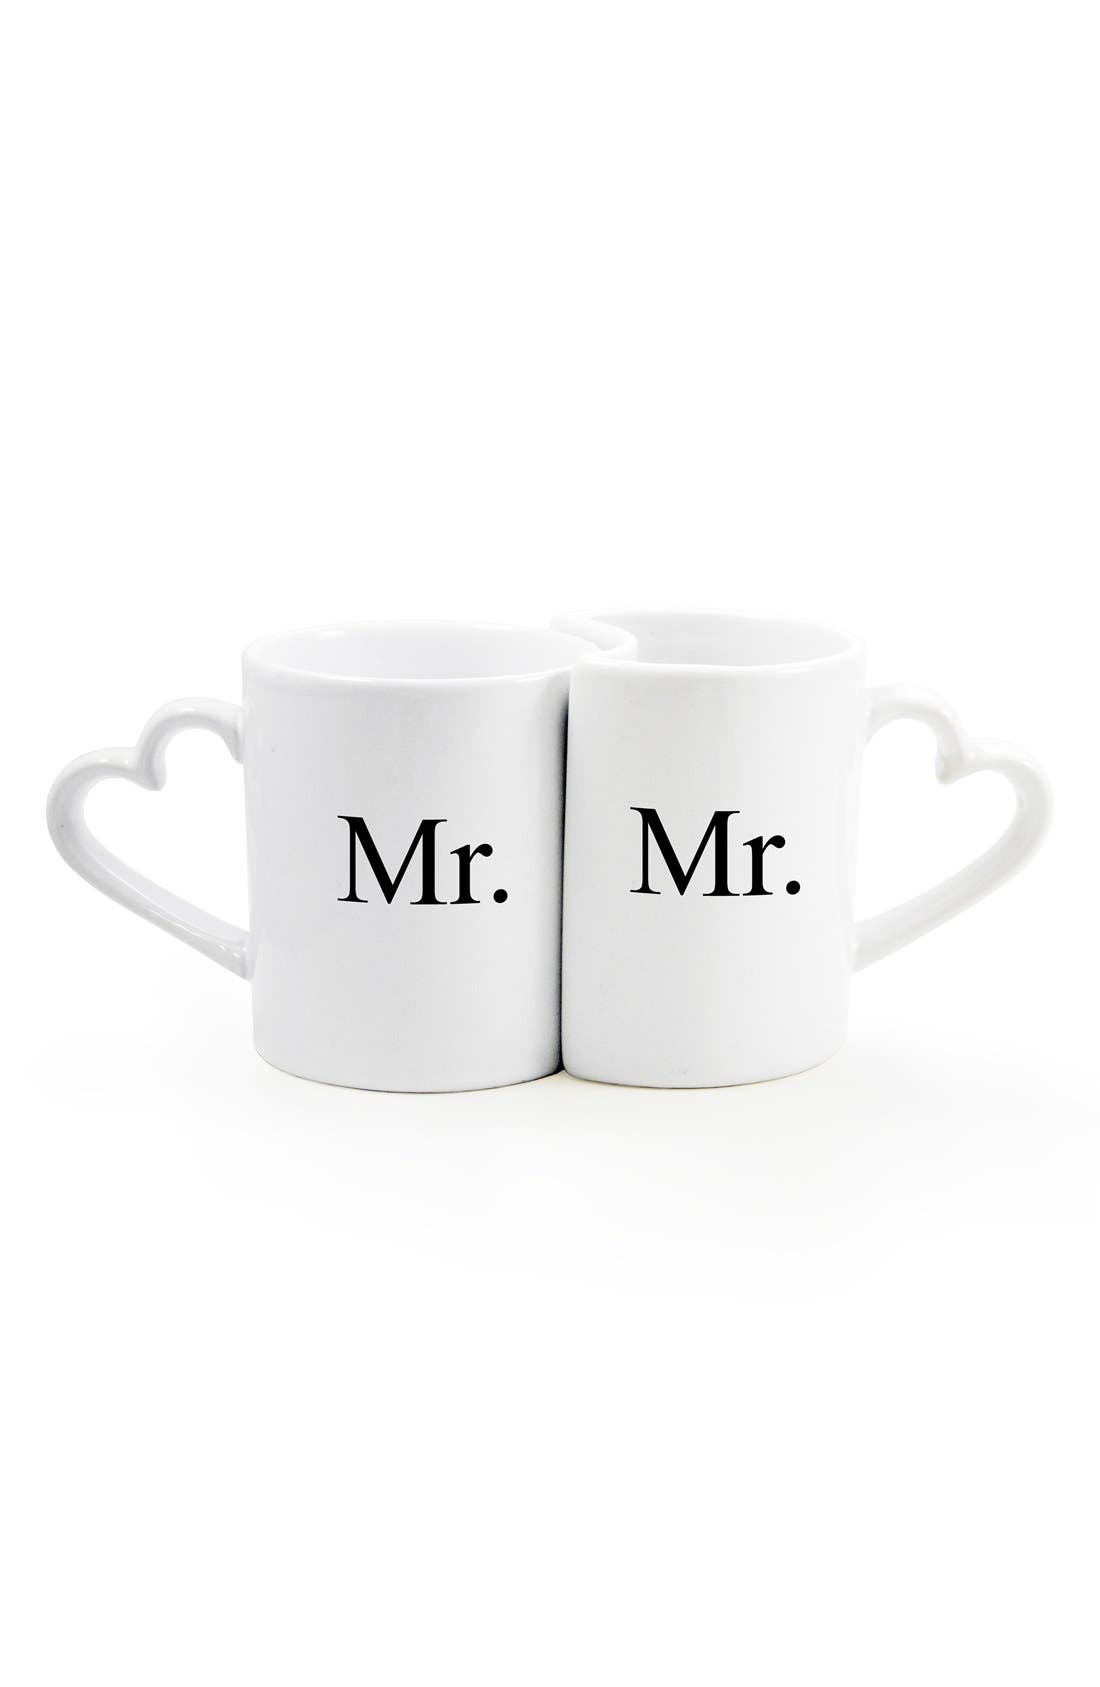 'For the Couple' Ceramic Coffee Mugs,                             Alternate thumbnail 2, color,                             101